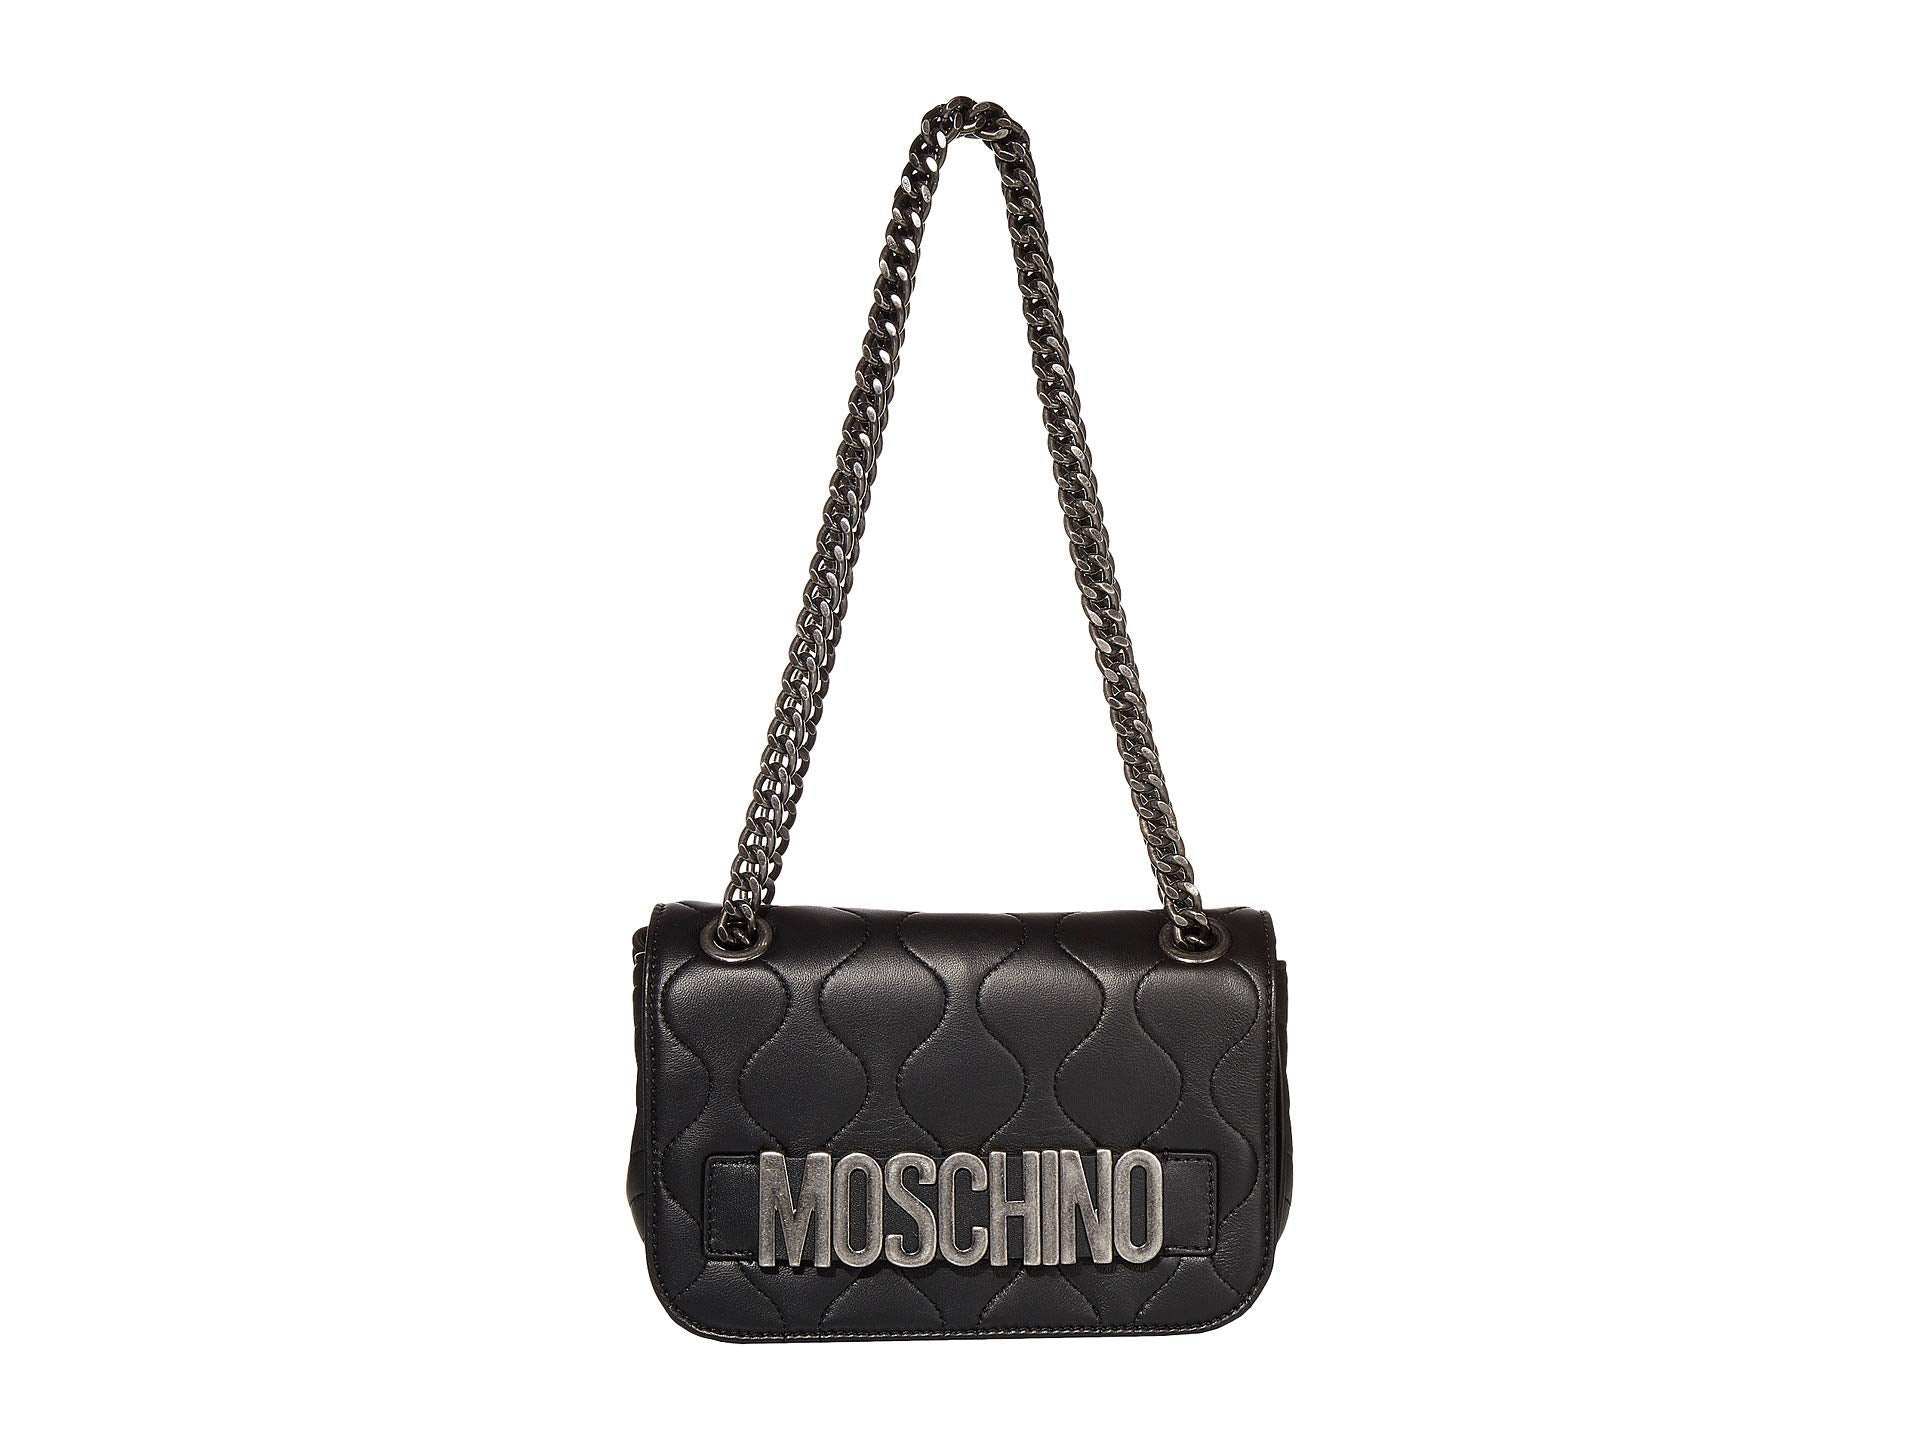 Moschino Leather Quilted Logo Crossbody Black One Size - wiihuu